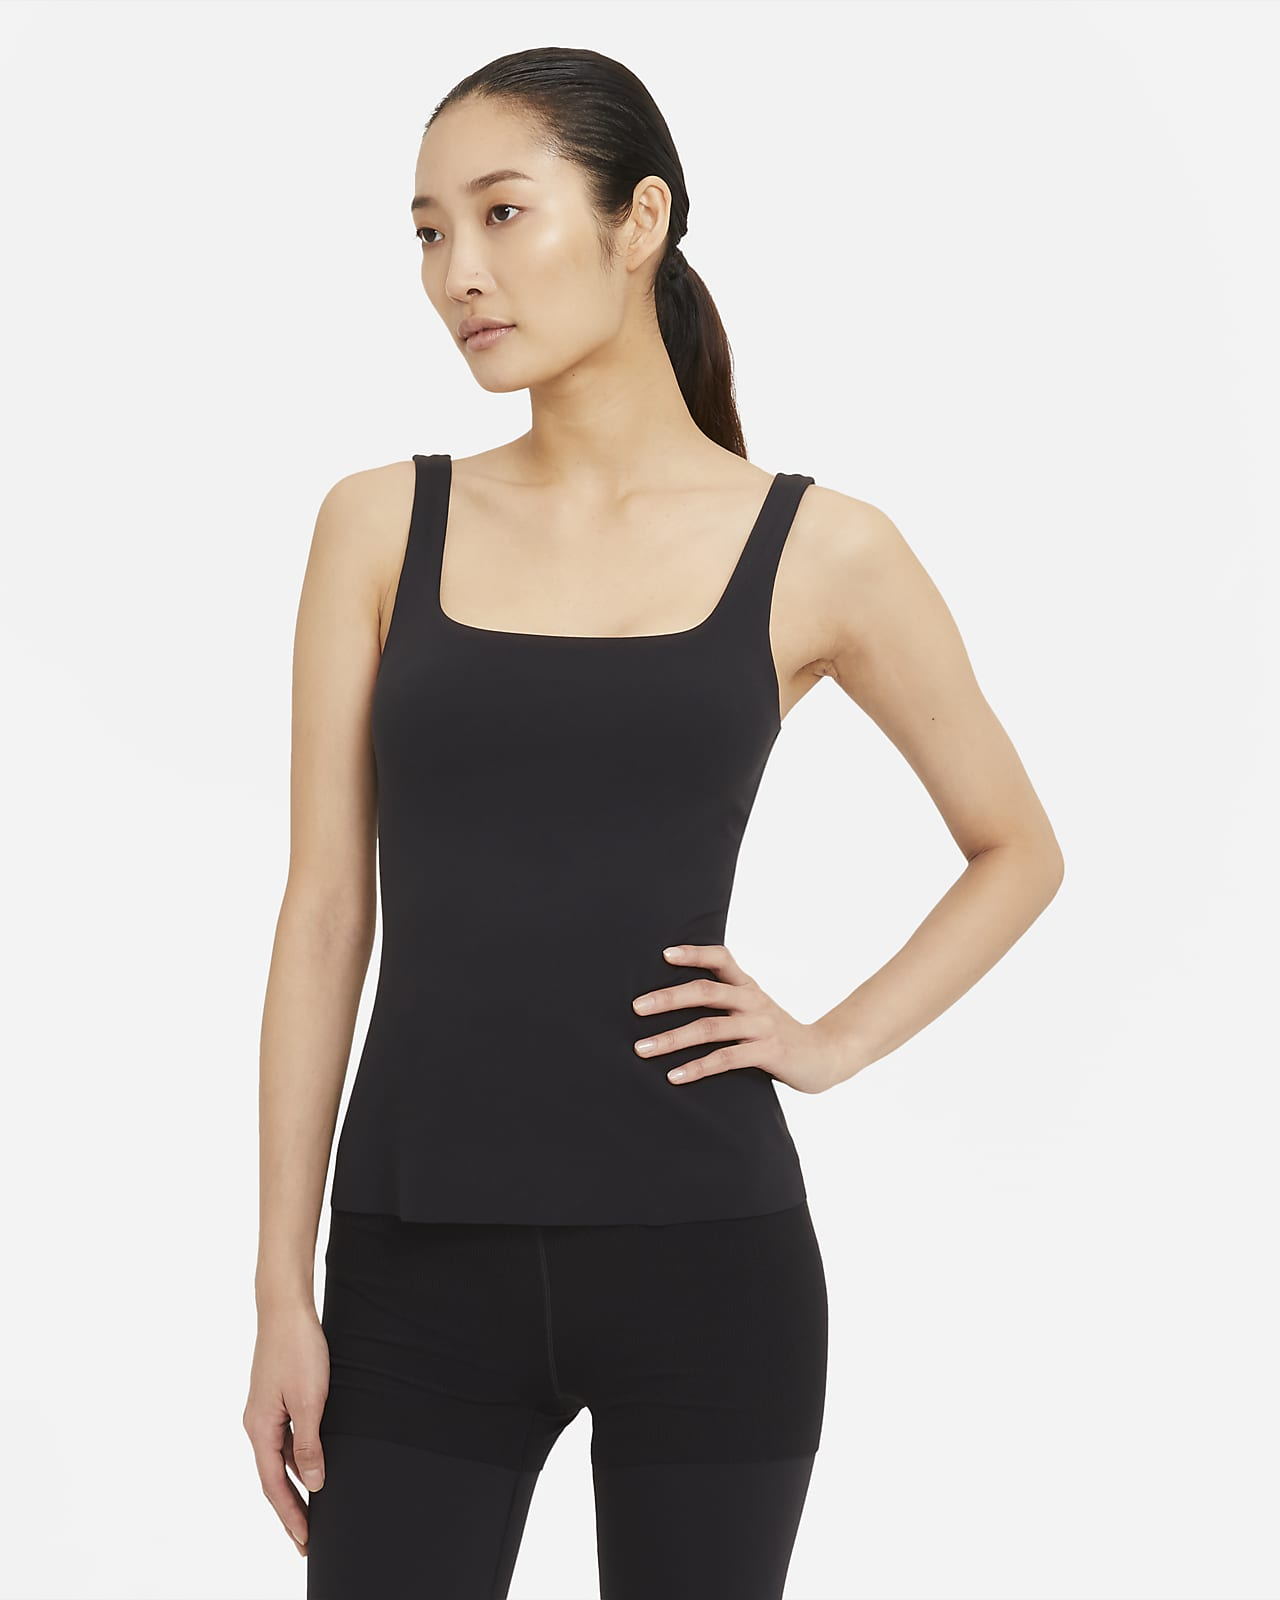 Nike Yoga Luxe 女子背心